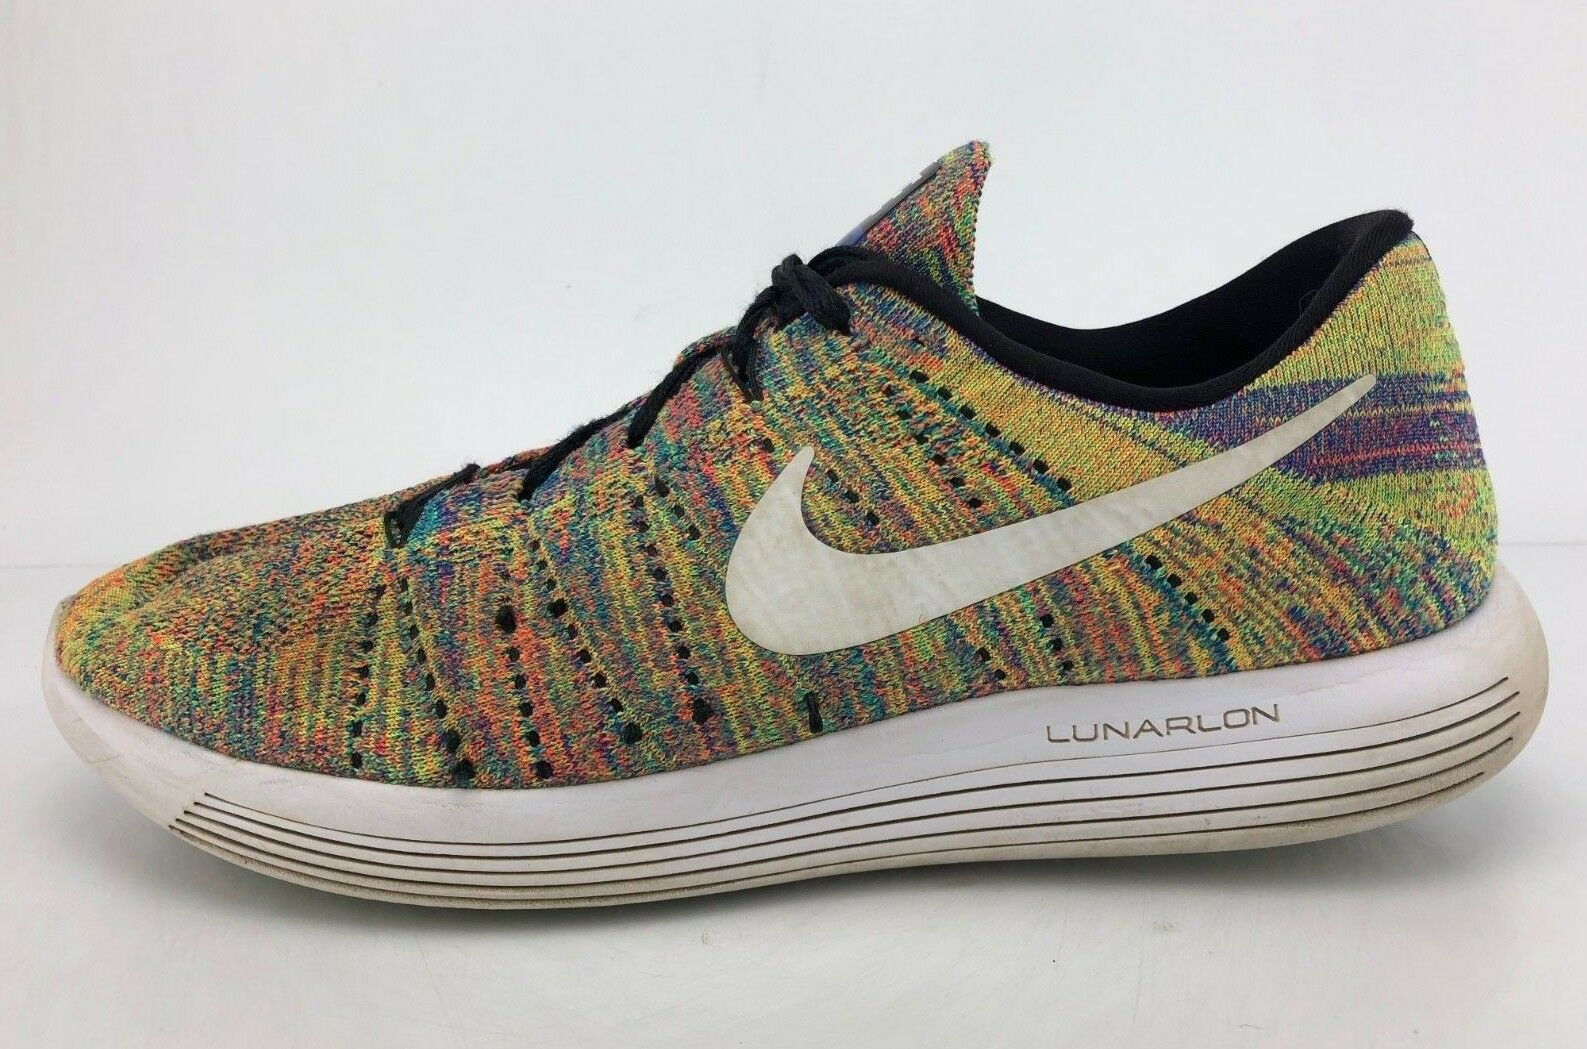 4a17a0fbc3 Nike Lunarepic Low Flyknit Running shoes Multicolor Fitness Sneakers Mens  Sz 12